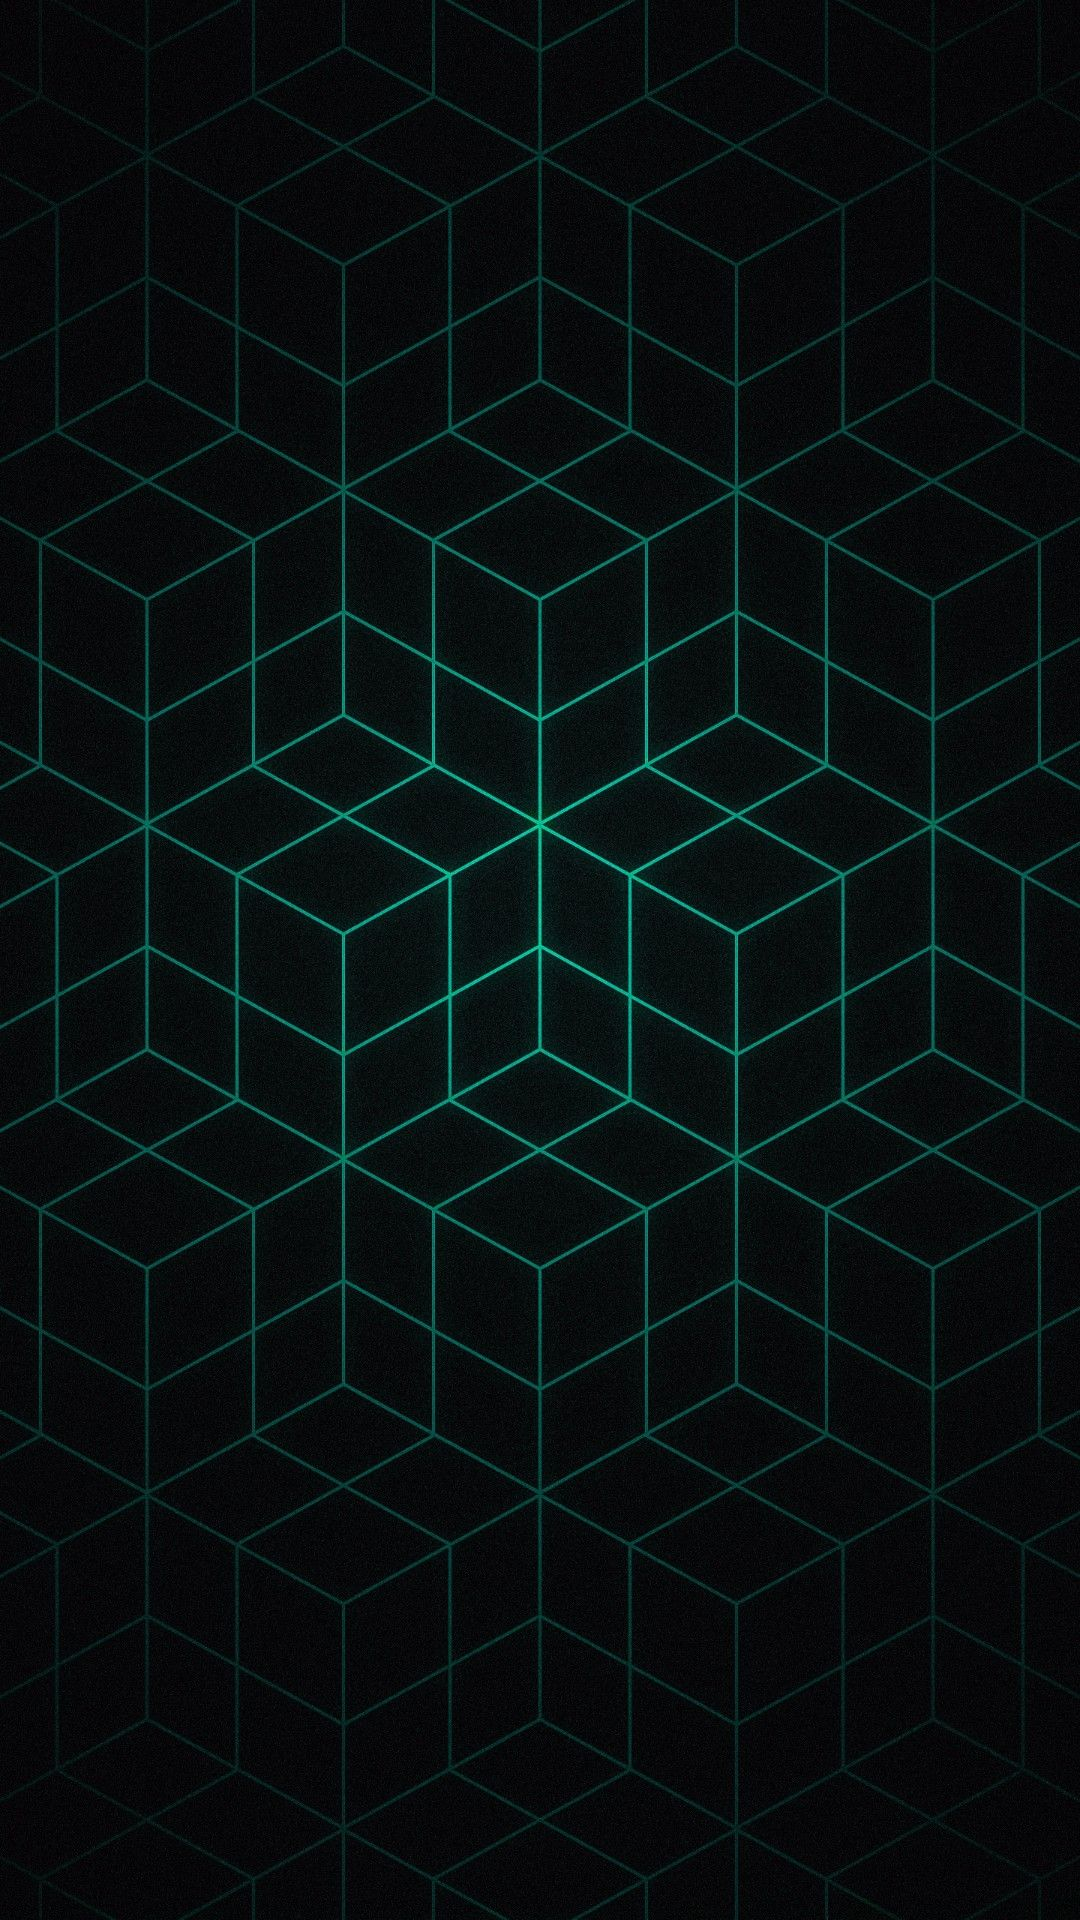 Pattern Green Design Line Symmetry Square With Images